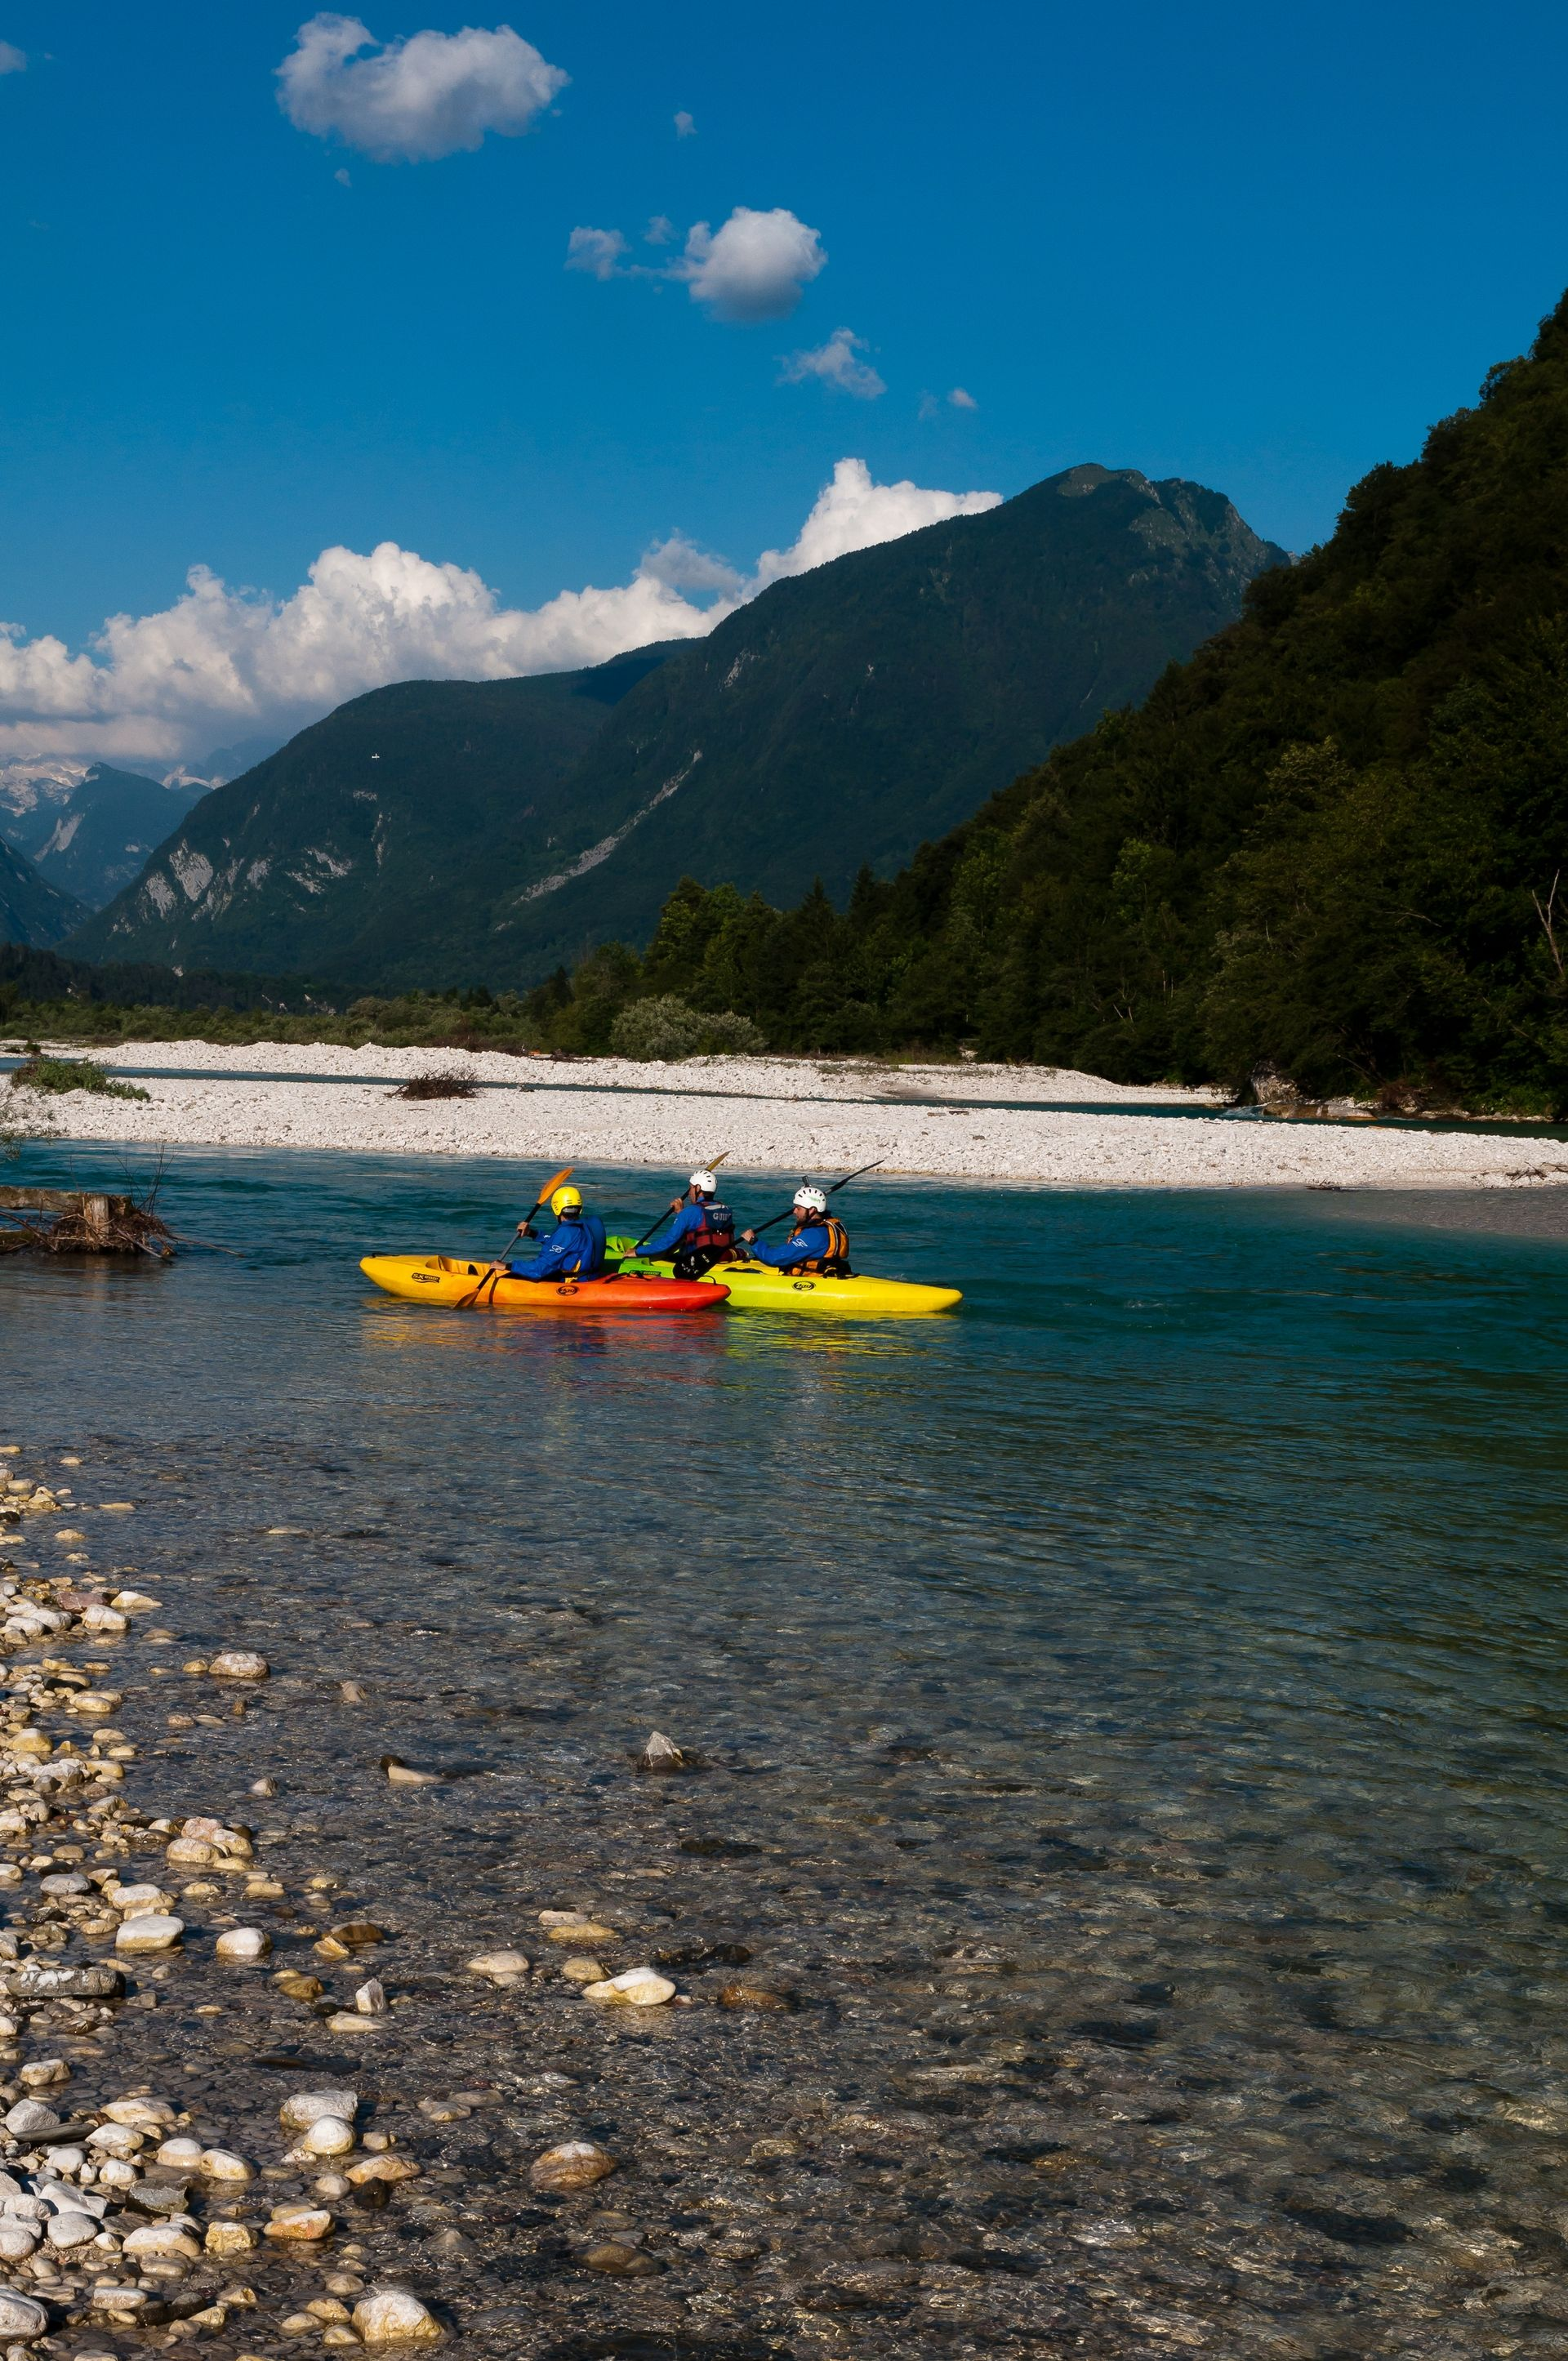 Private School in Bovec (2 x 2 hours) Bovec, Triglav National Park, Slovenia #8c8b2e6b-0630-428a-a778-862429d5f193